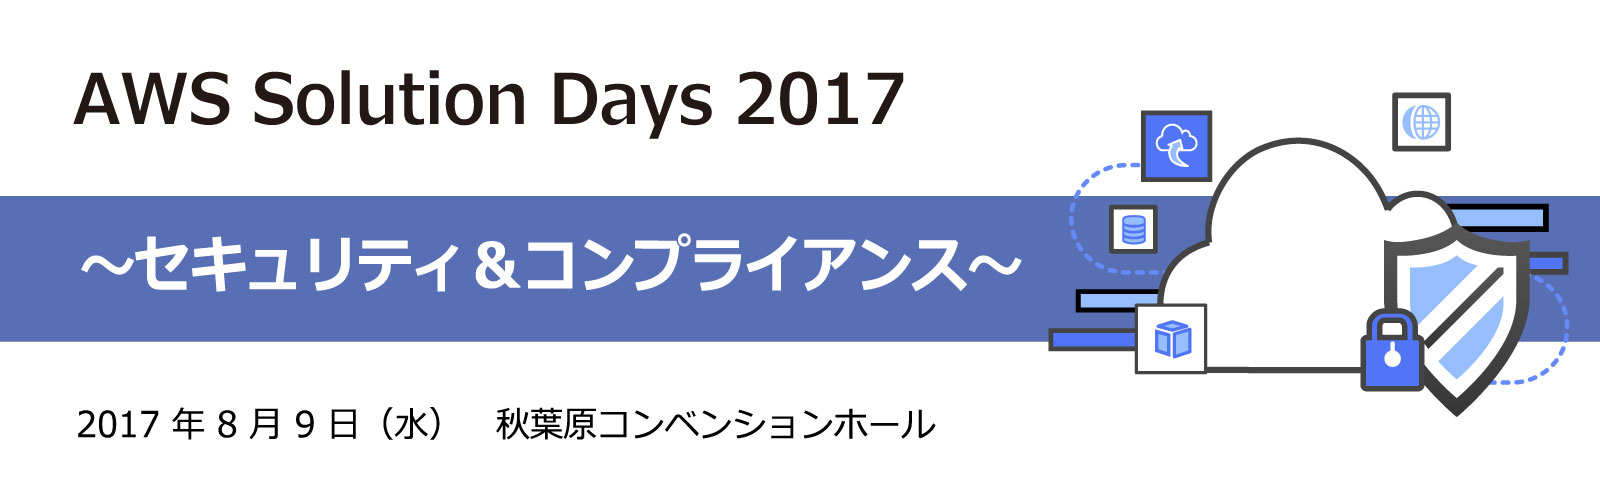 solutionday2017_Security_v2